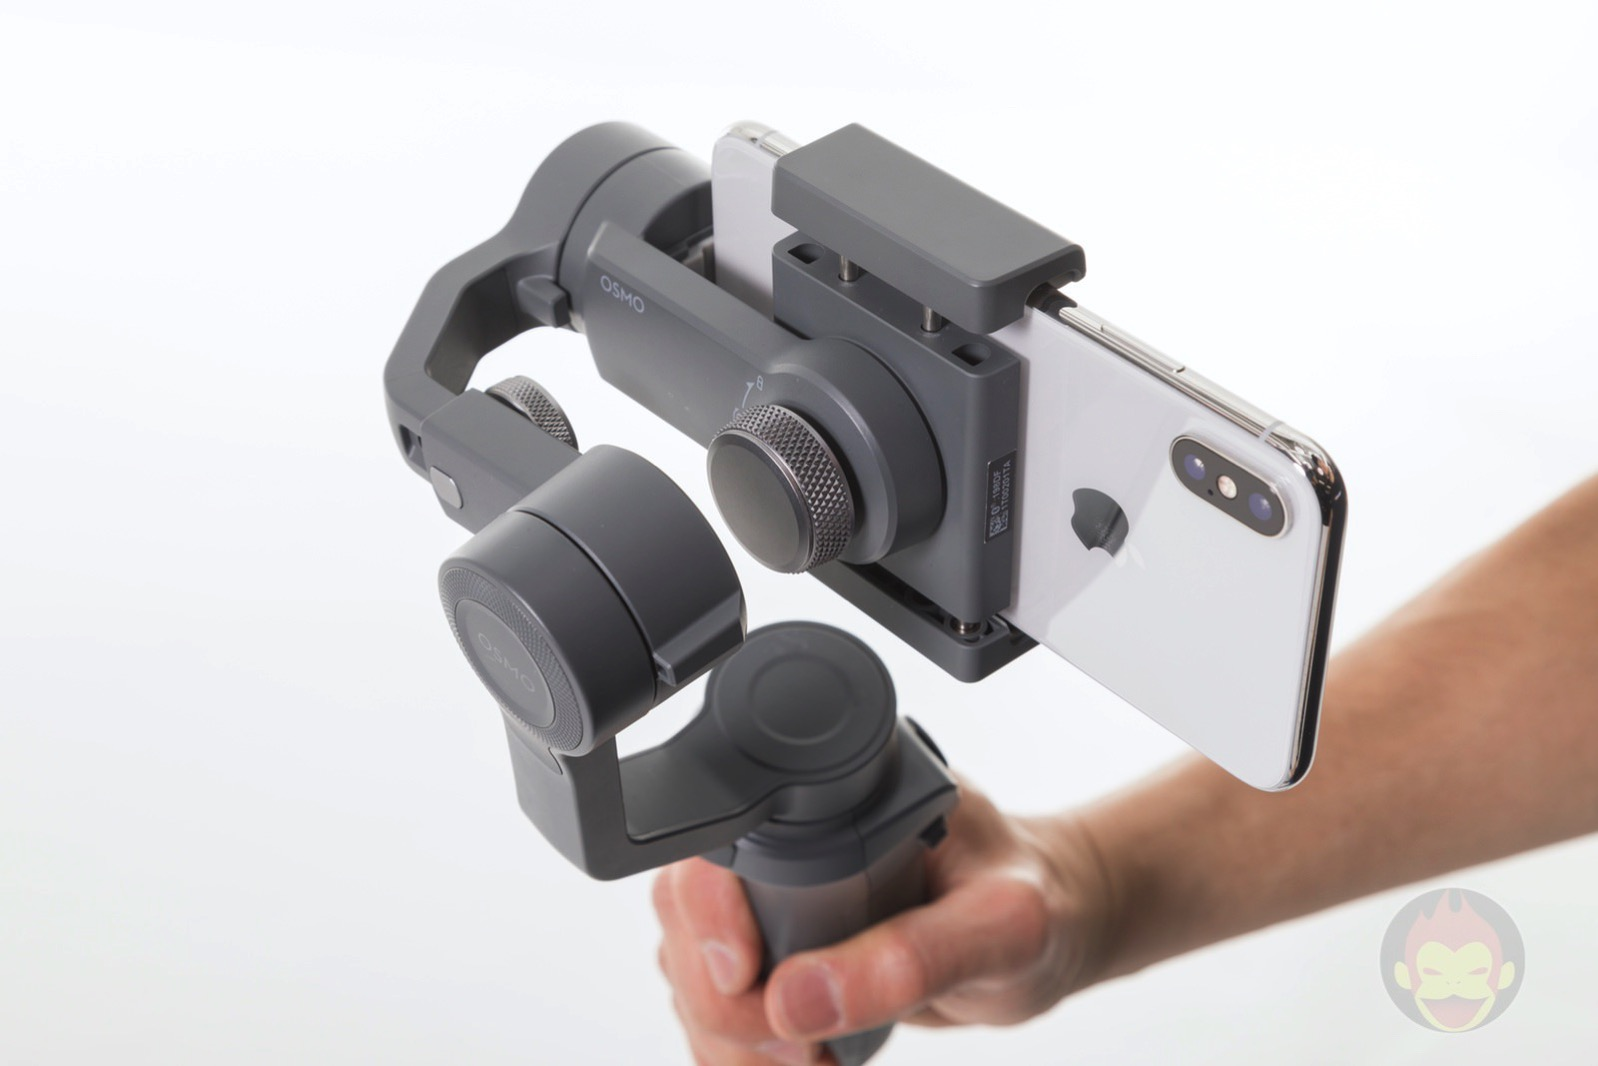 Osmo Mobile 2 Stabilizer 11